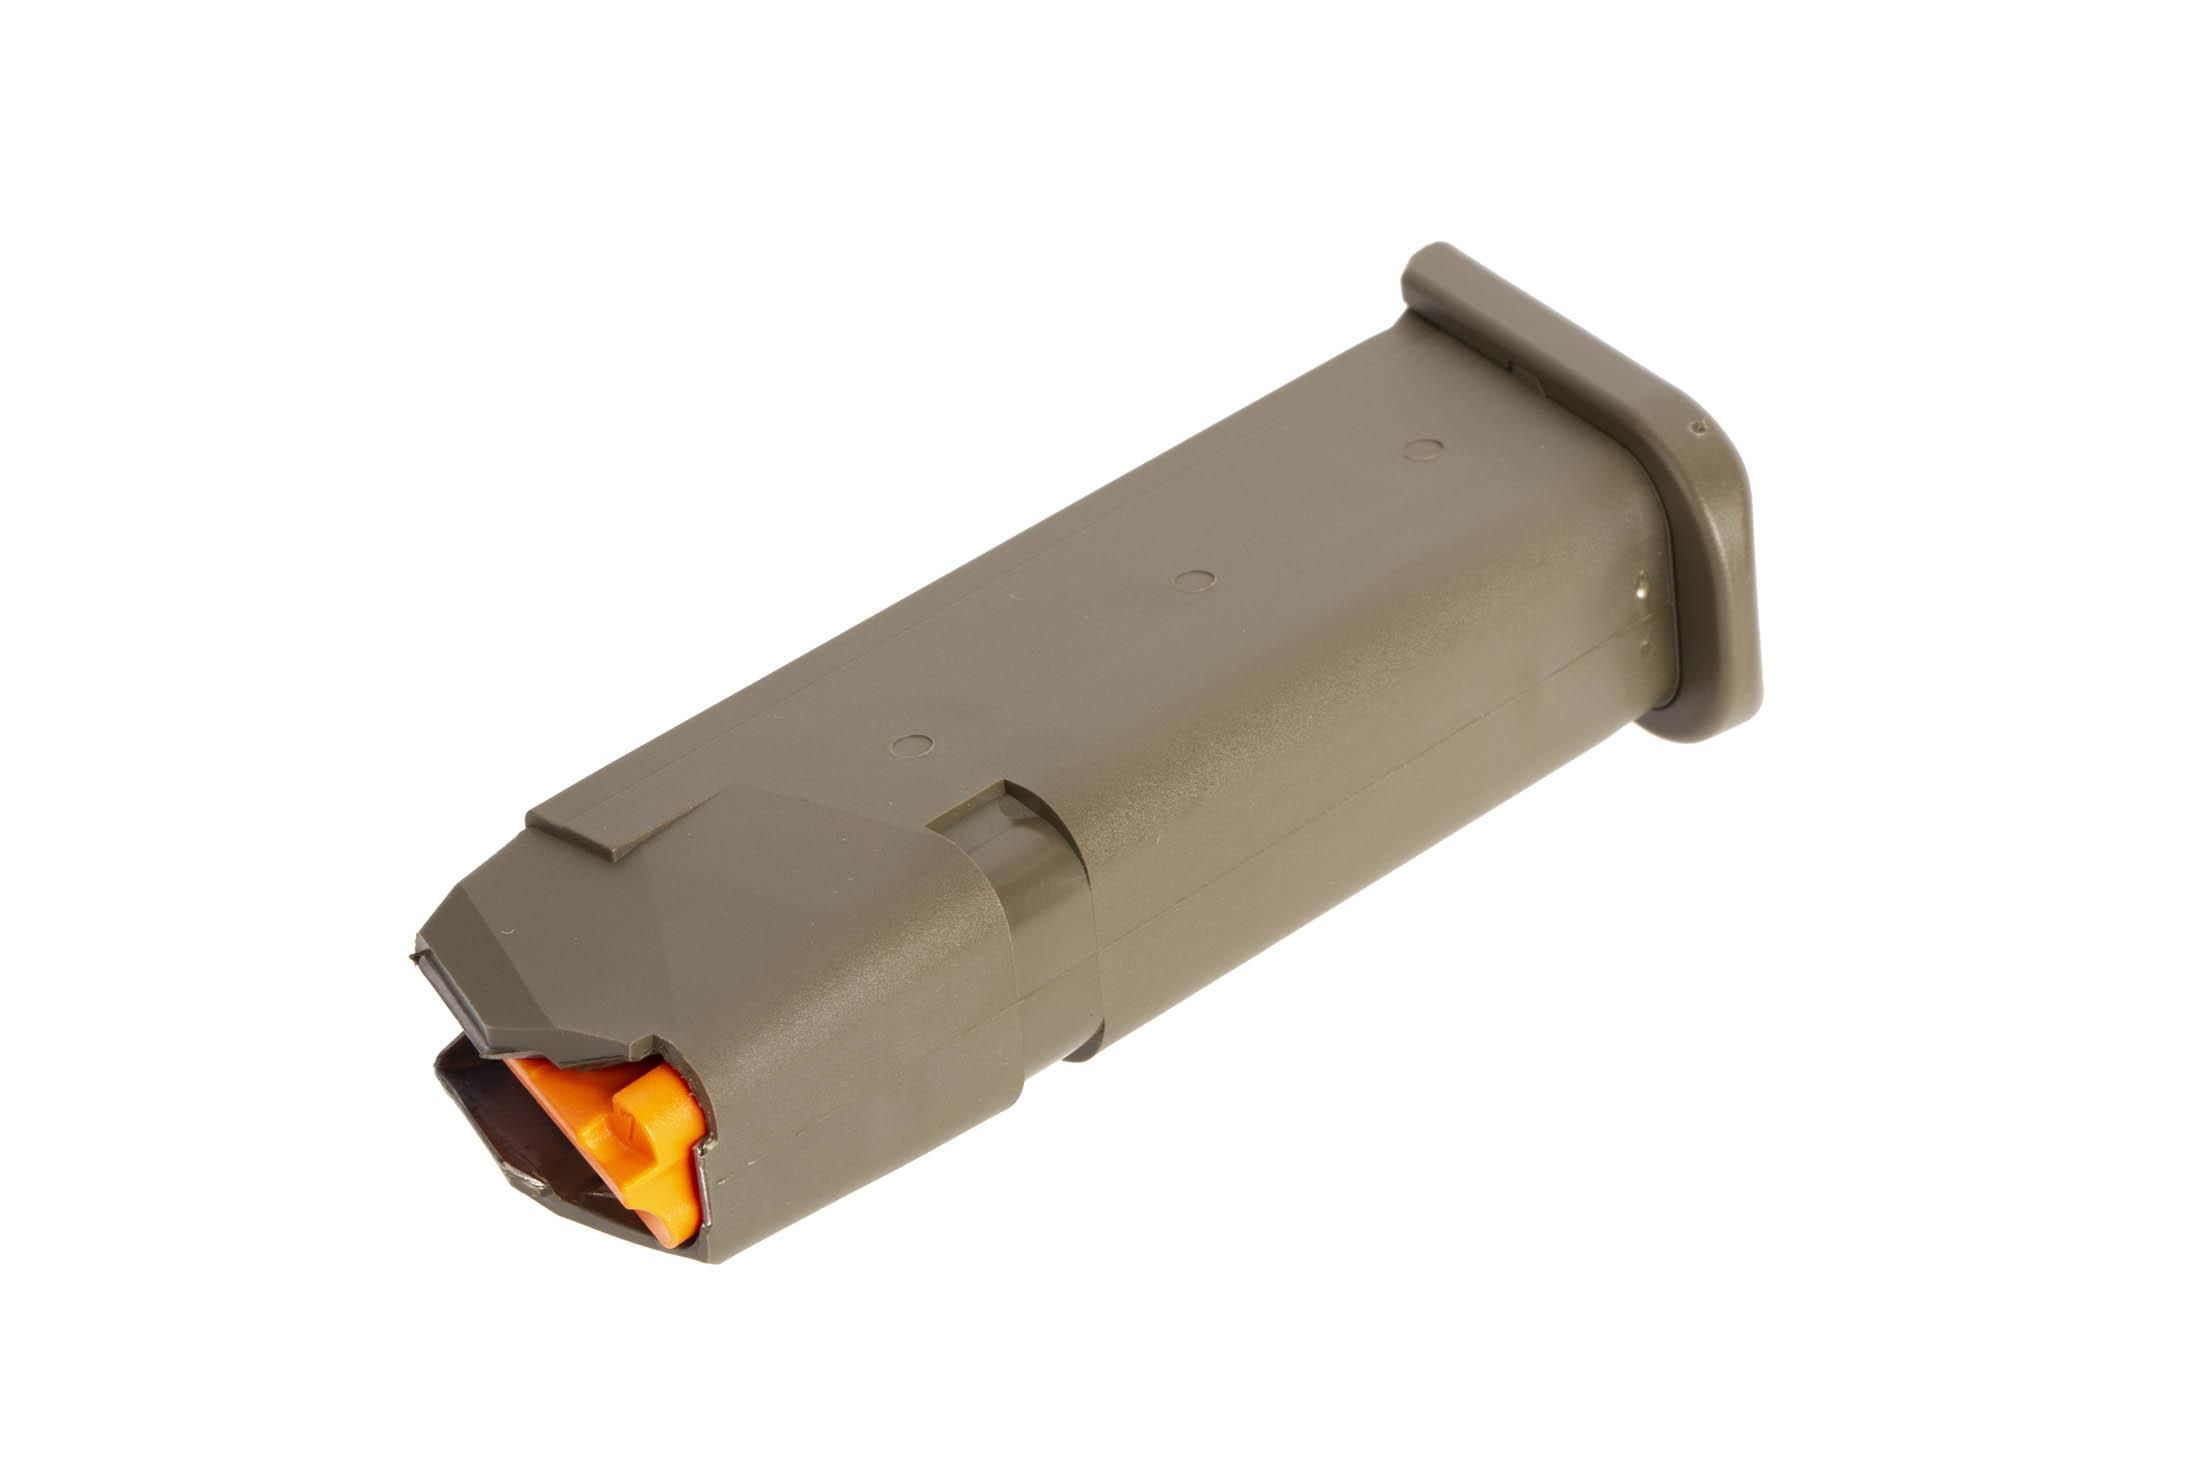 GLOCK factory original G19 Gen5 pistol magazine holds 15 rounds has an ODG finish and hi vis follower